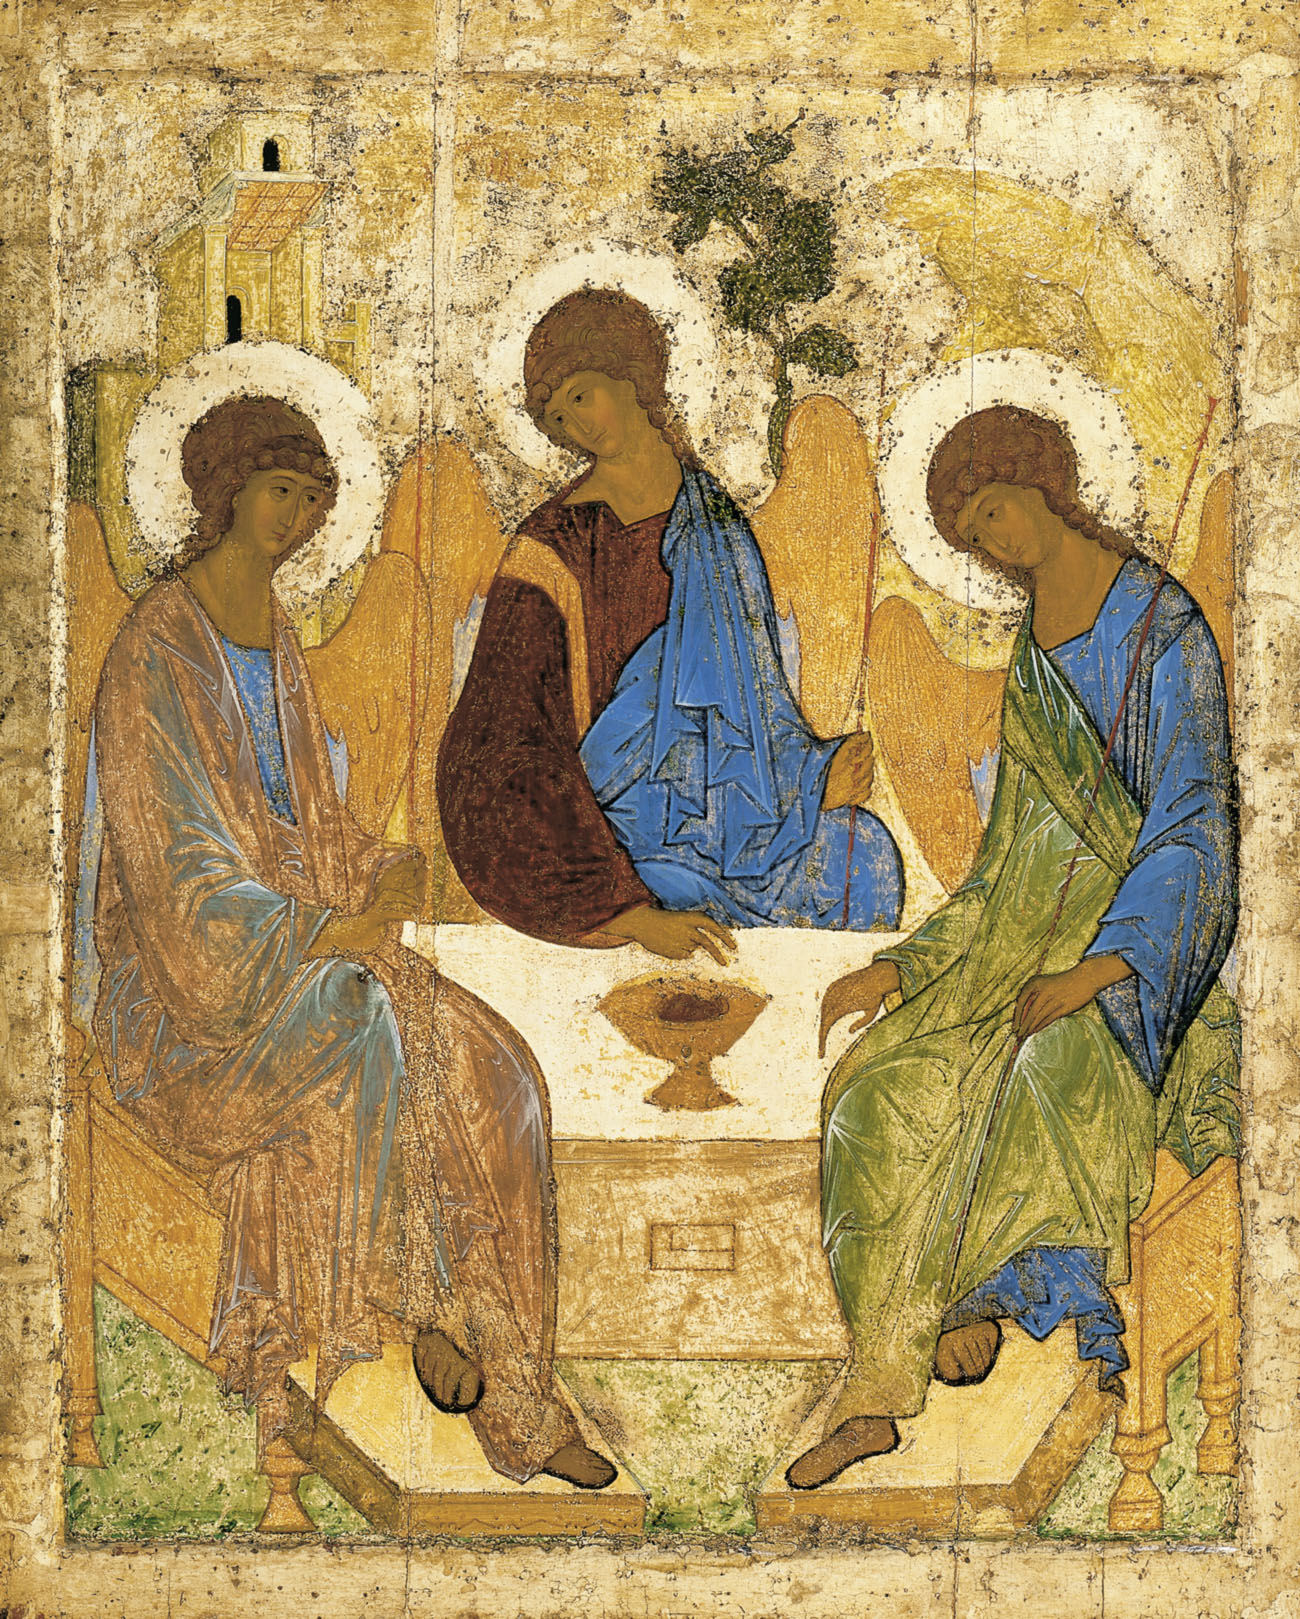 25 most impressive works of religious art online schools center image source biocorpaavc Images